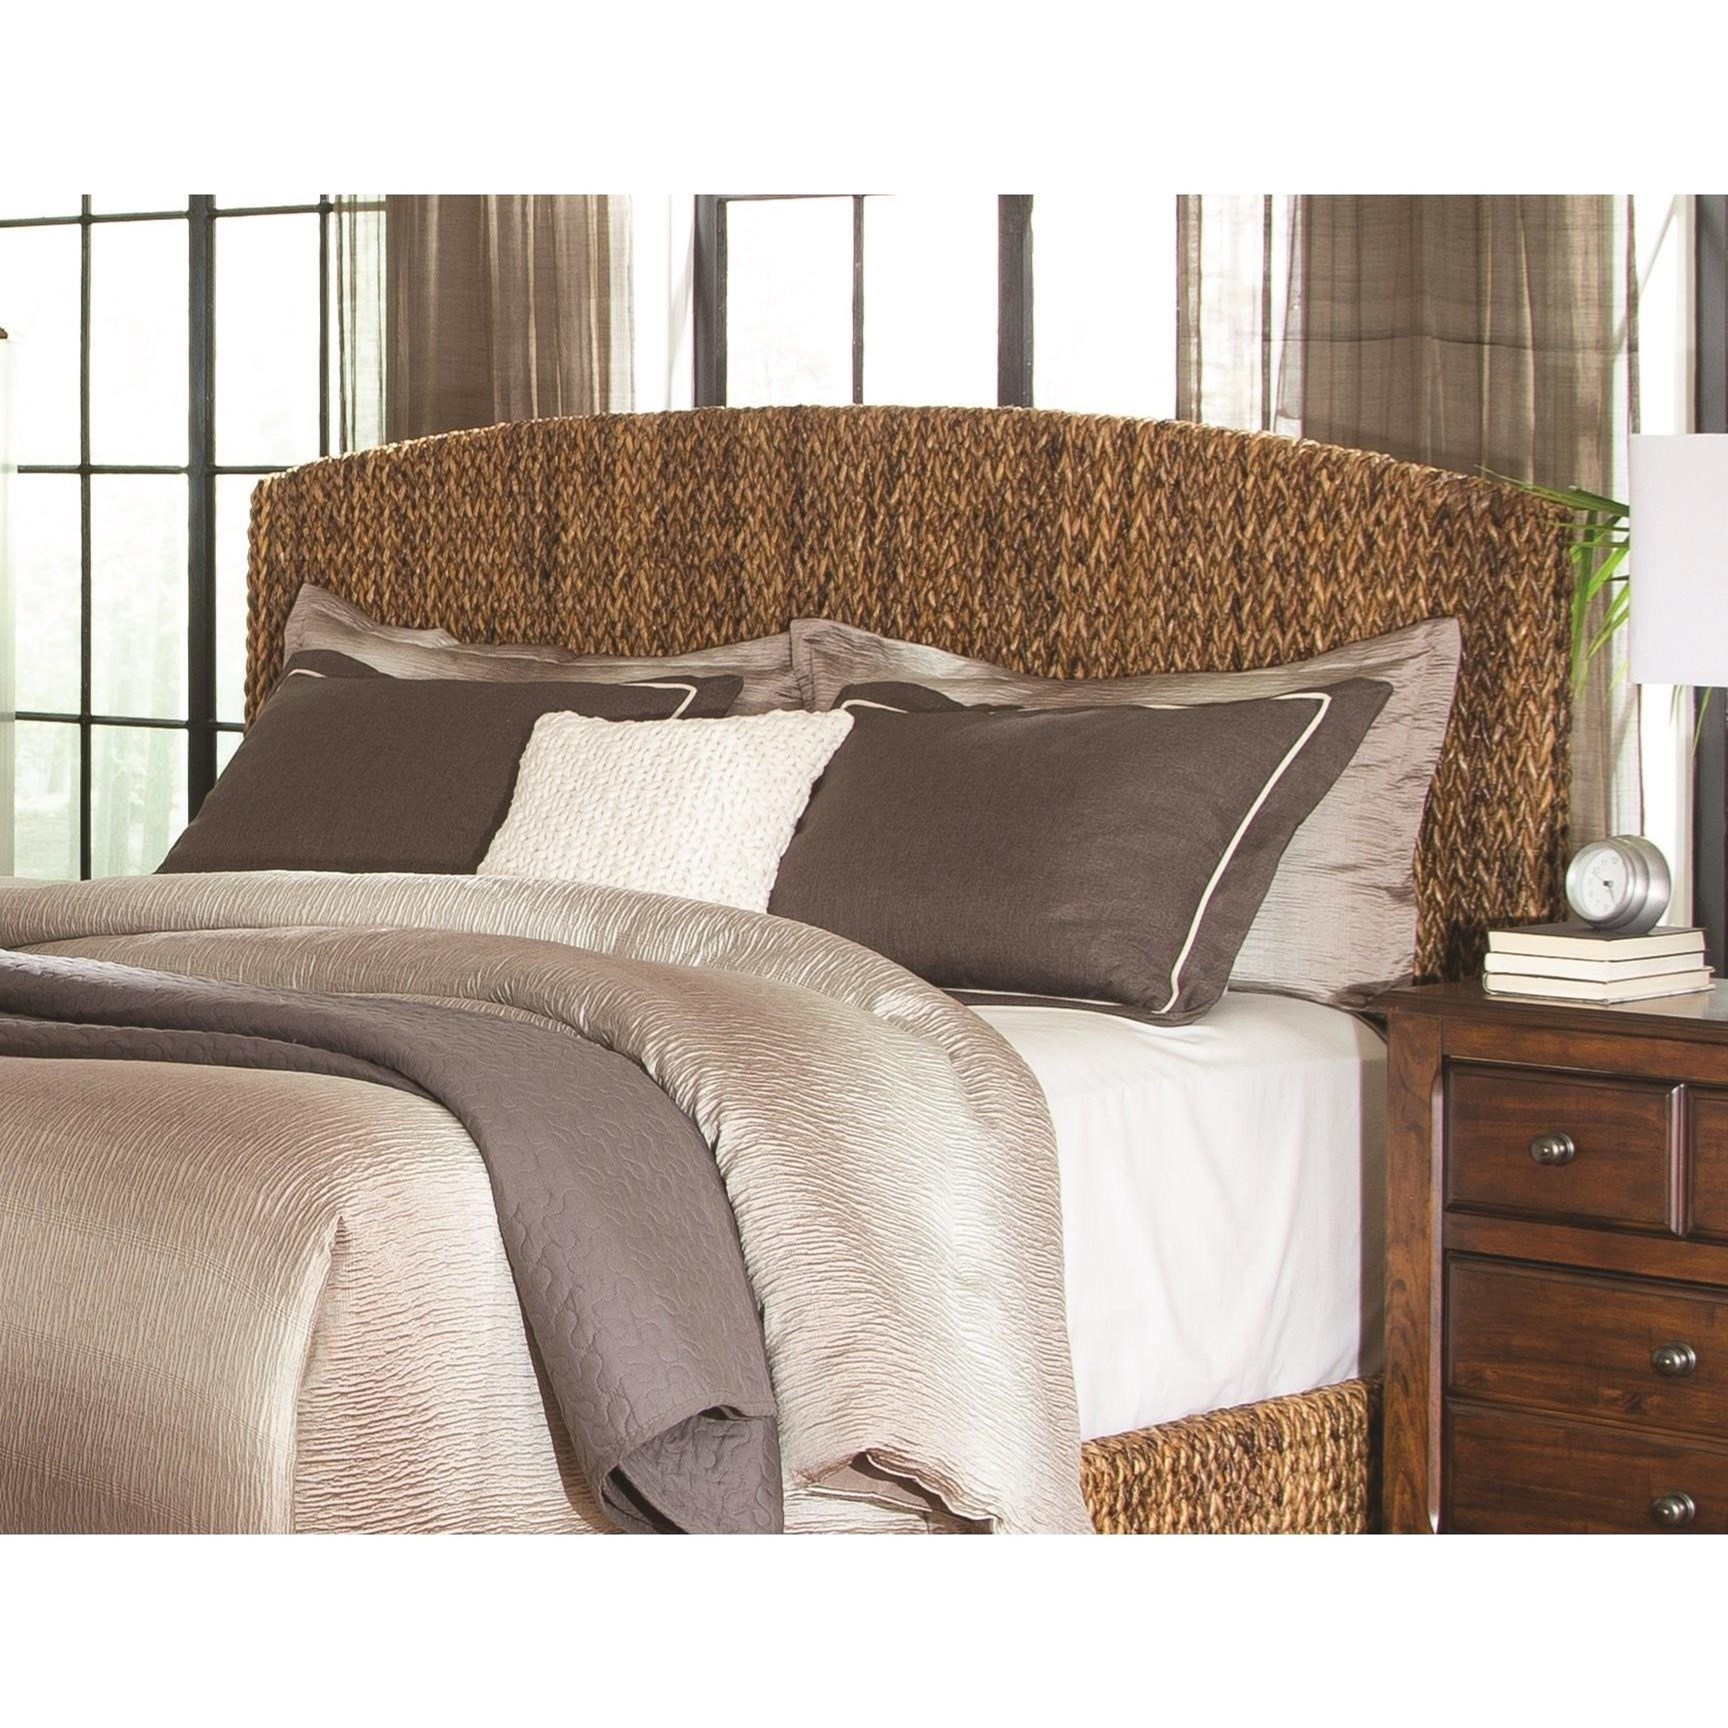 Laughton Queen Headboard by Coaster at Value City Furniture